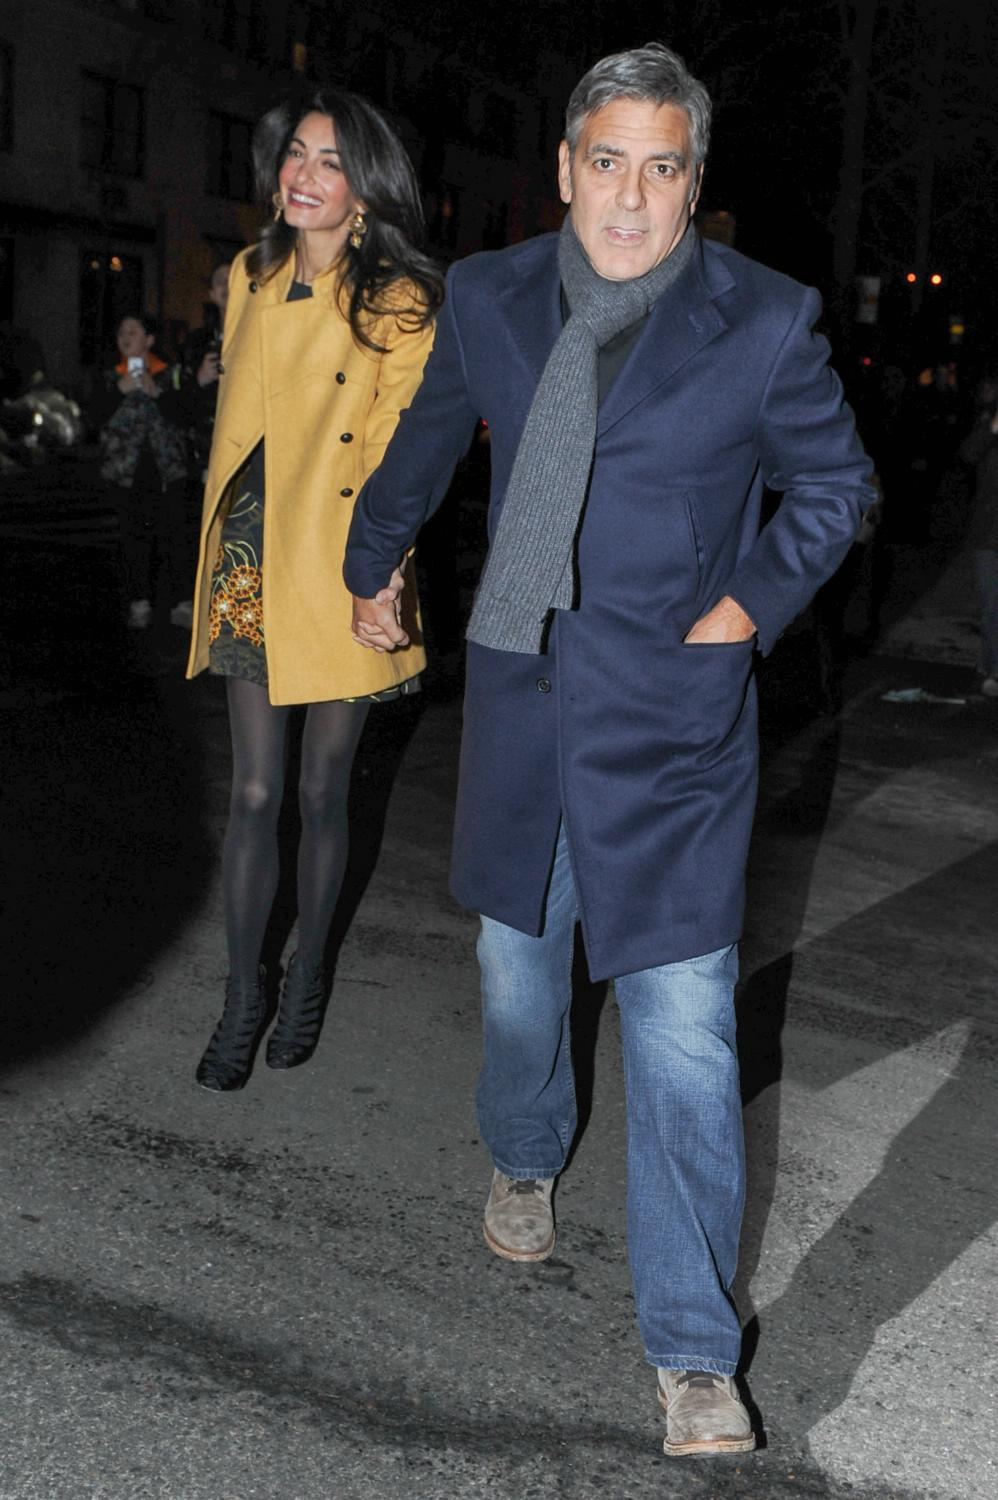 George-Amal_Clooney-March-8-2015